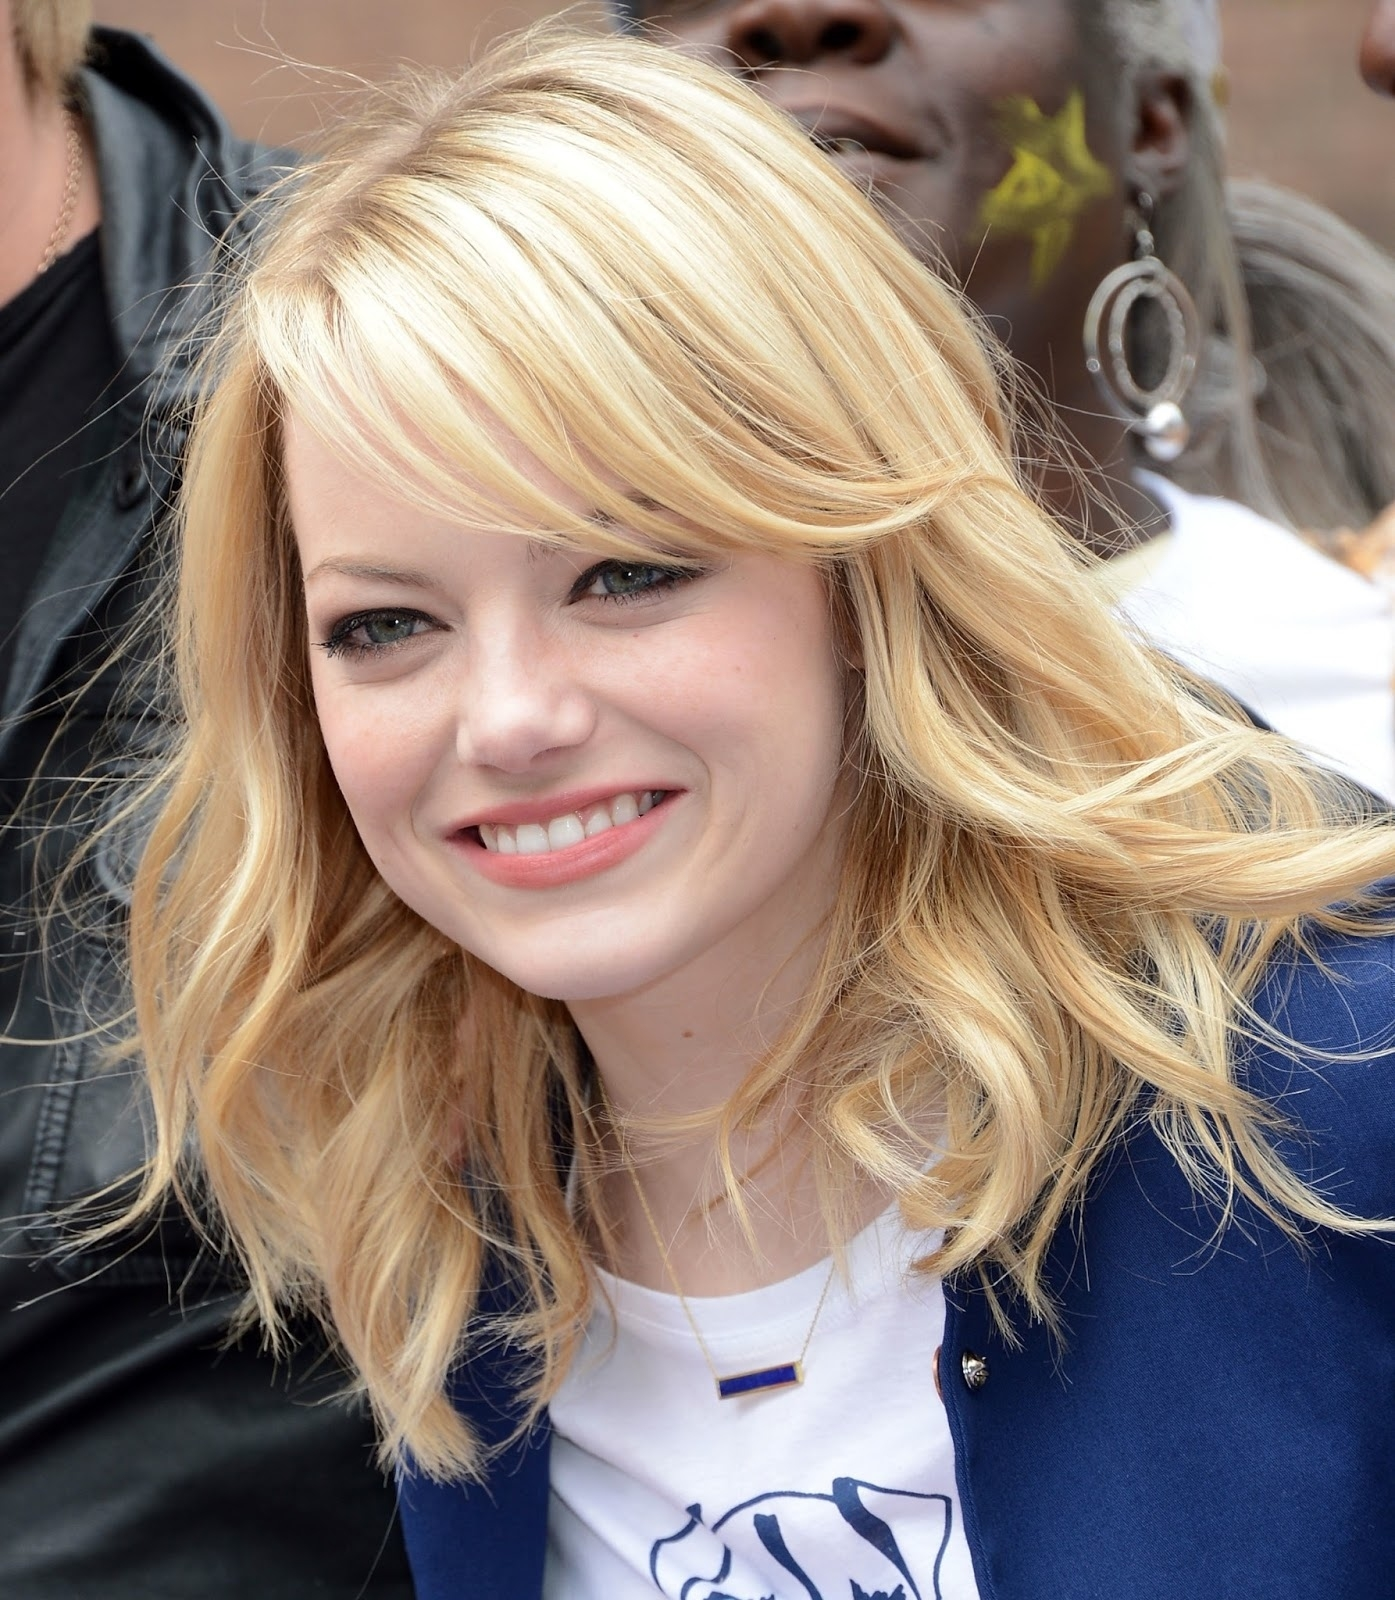 7 Best Haircuts For Round Face - Mabh Blog intended for Haircut For Round Face With Name